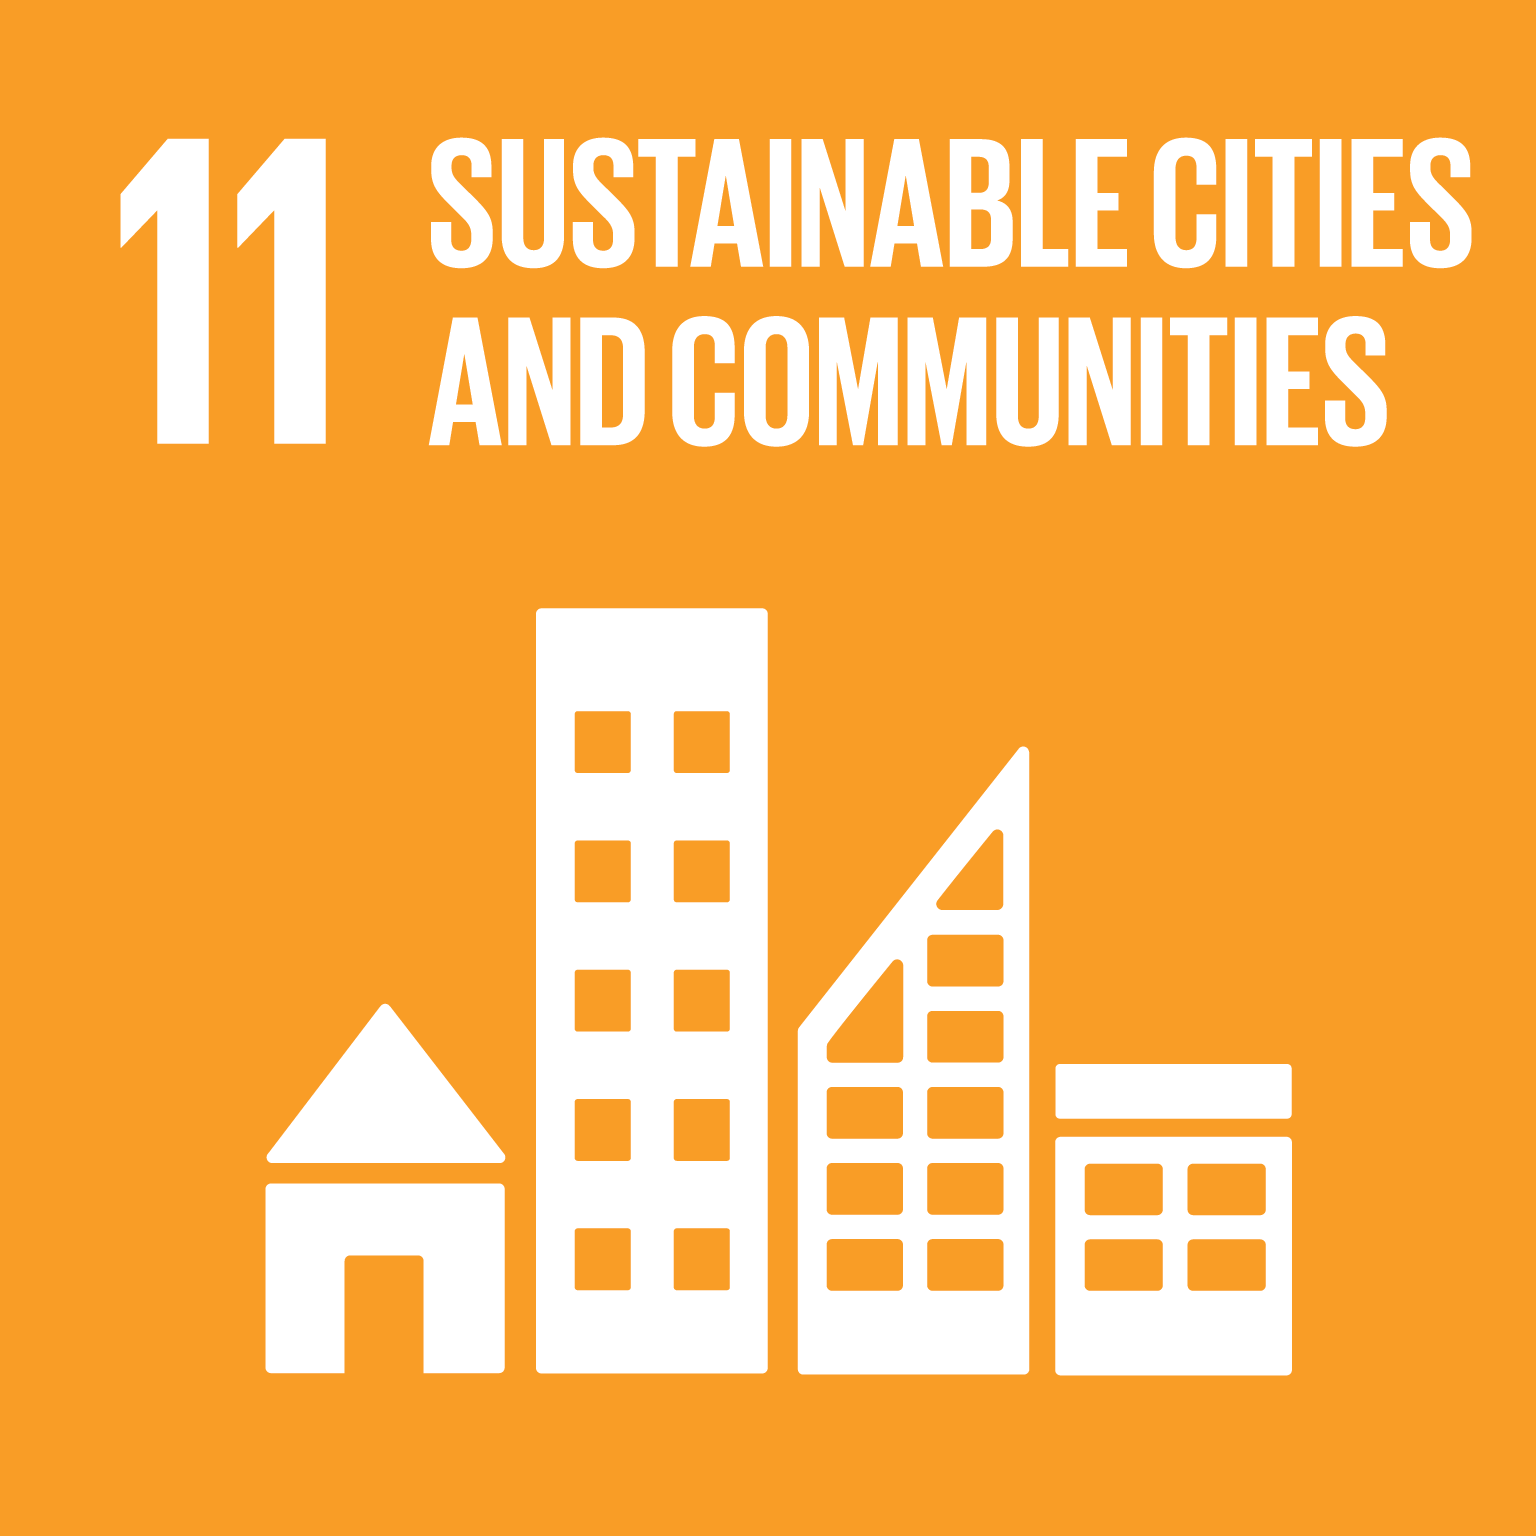 Goal 11 – Sustainable Cities and Communities